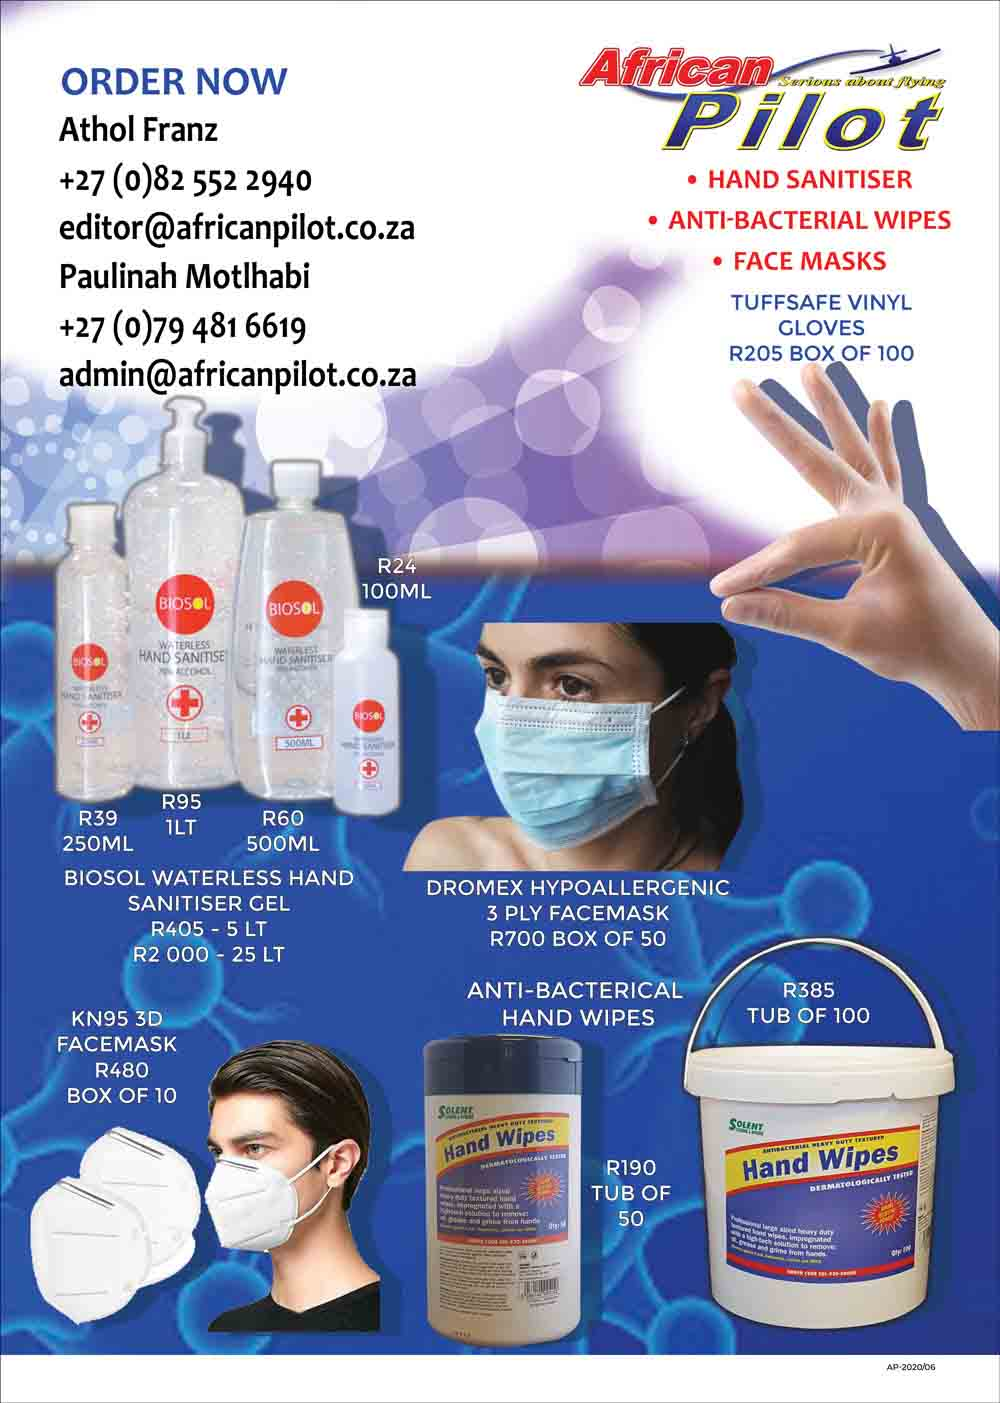 African Pilot COVID-19 products